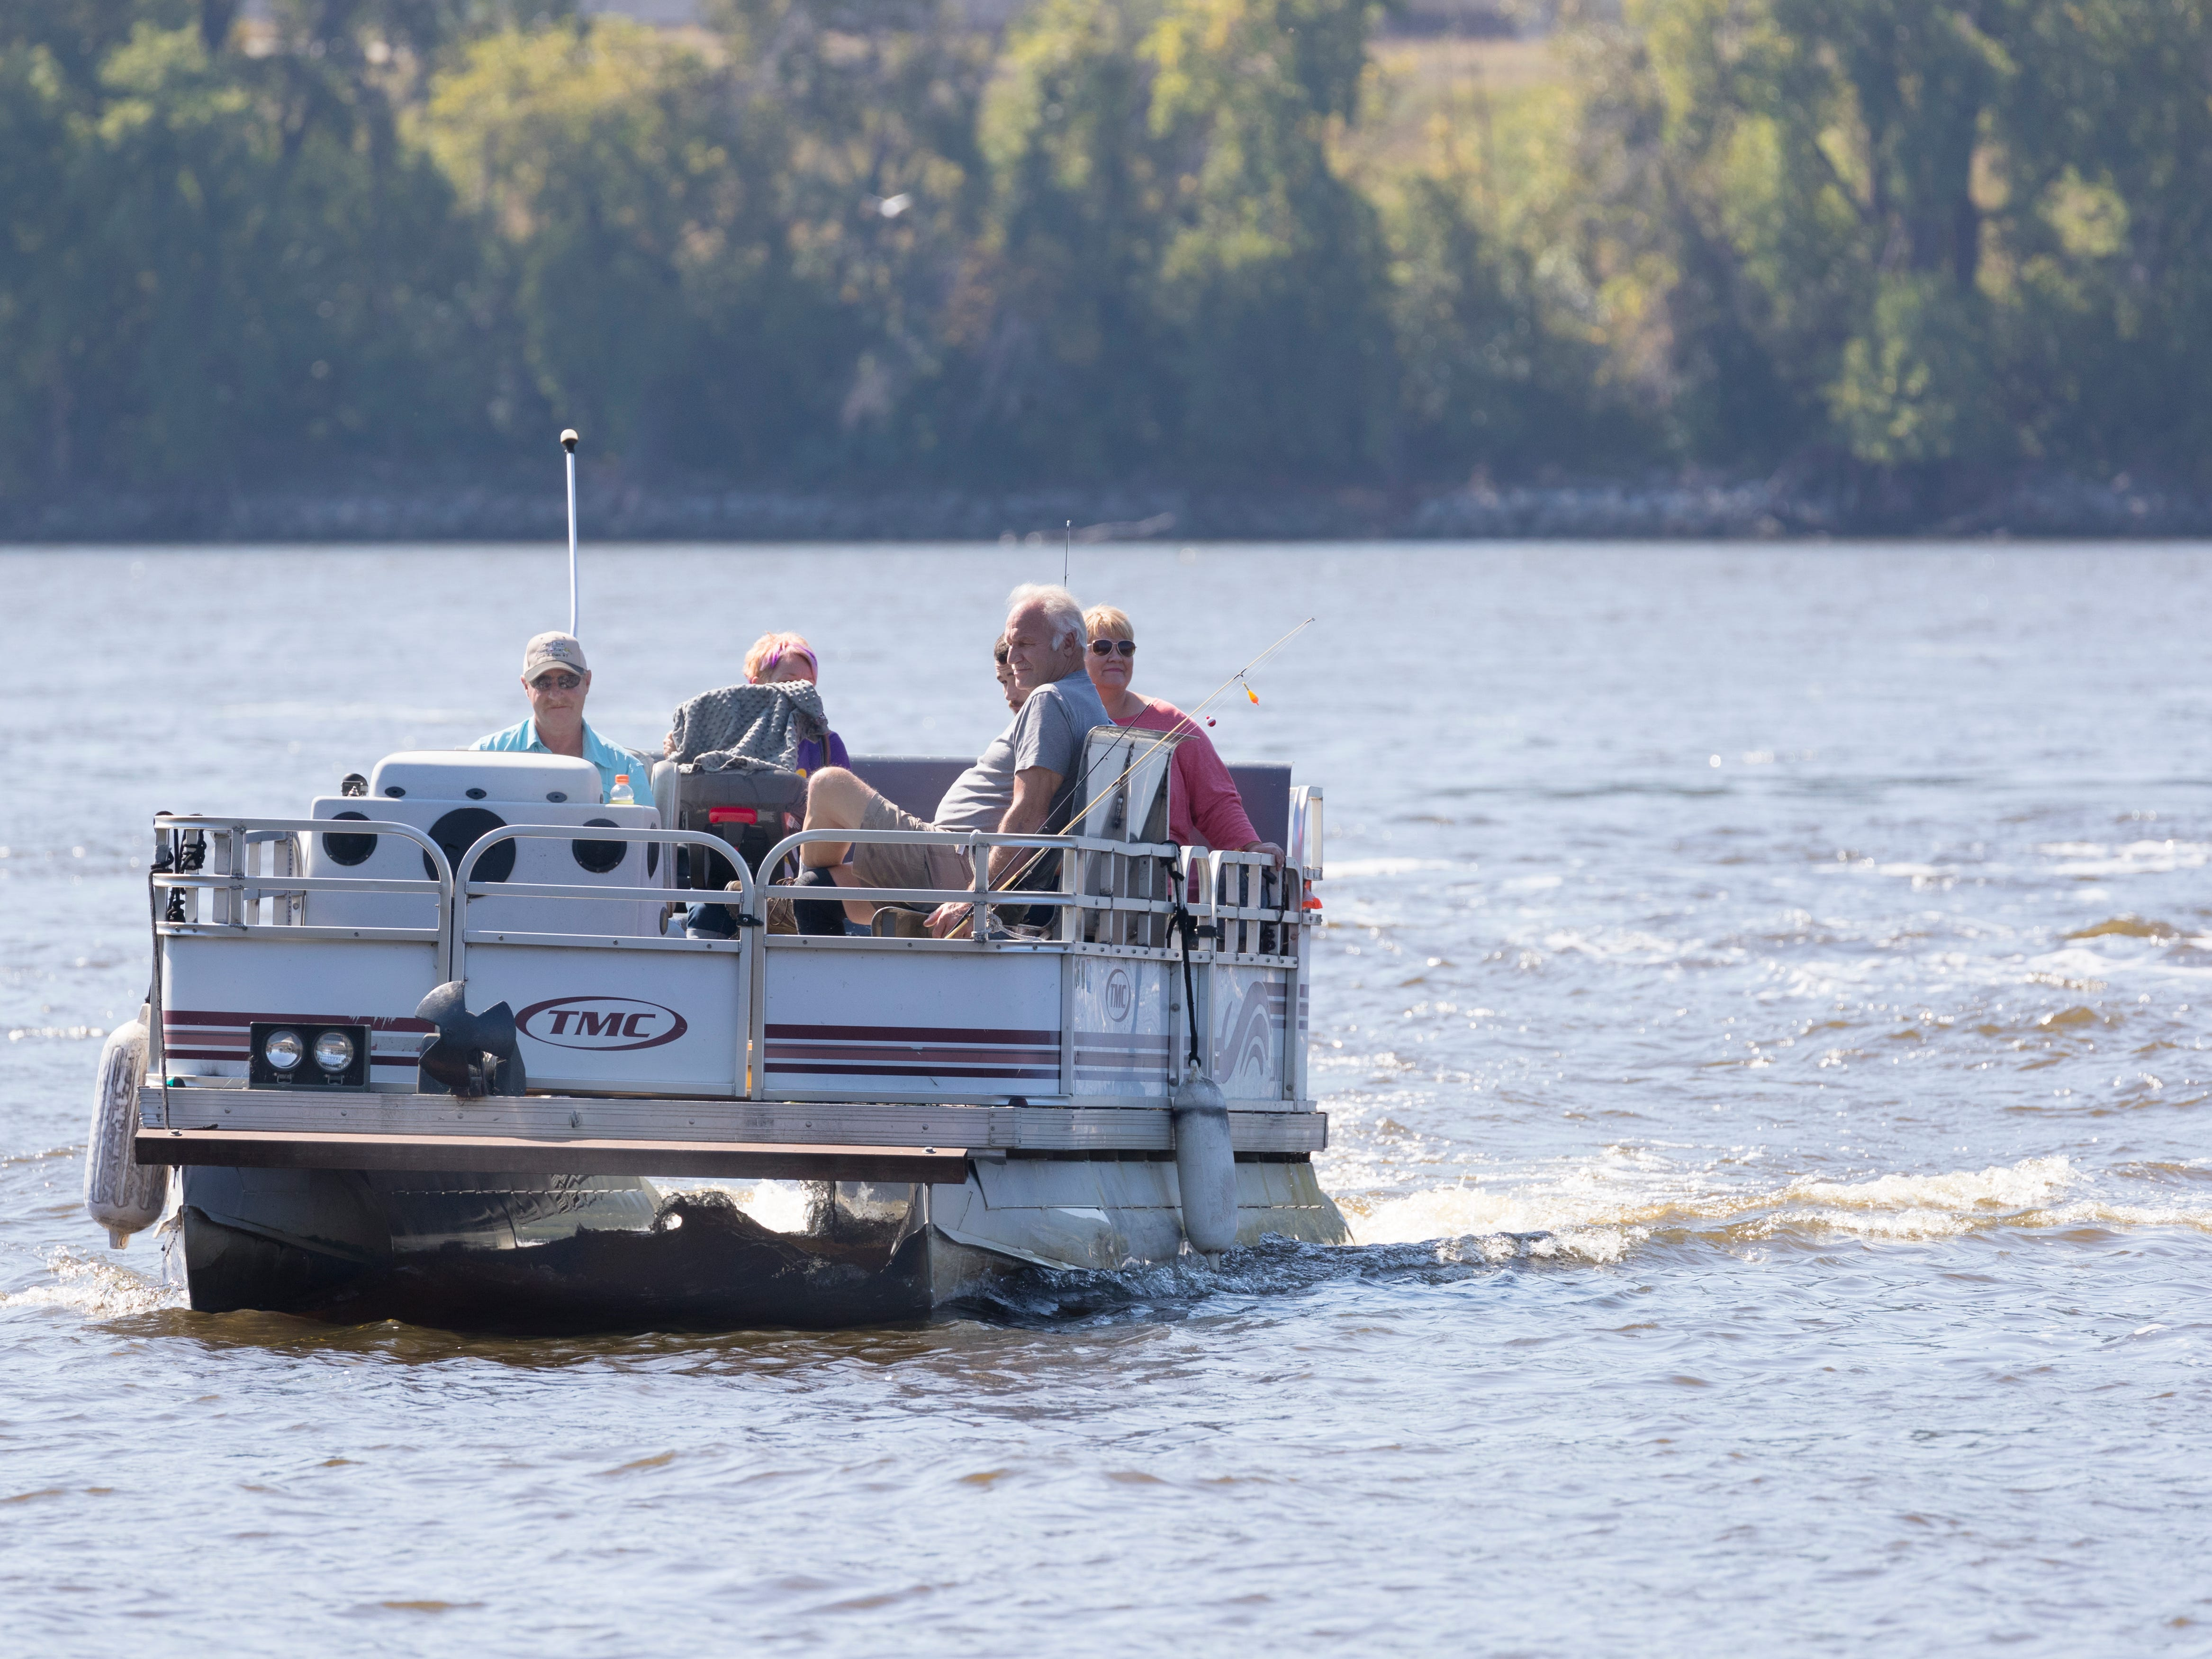 Tom Rieple is at the helm of the the pontoon boat  bringing customers to the Best Dam Fishing Float on the Mississippi River in La Crosse on Sunday. The floating dock, located on the Wisconsin side, caters to anglers who want to fish a hot spot below Lock & Dam No. 7. Anglers wanting to patronize the dock flip a sign on a boat landing on the Minnesota side of the river signaling someone to pick them up by boat.